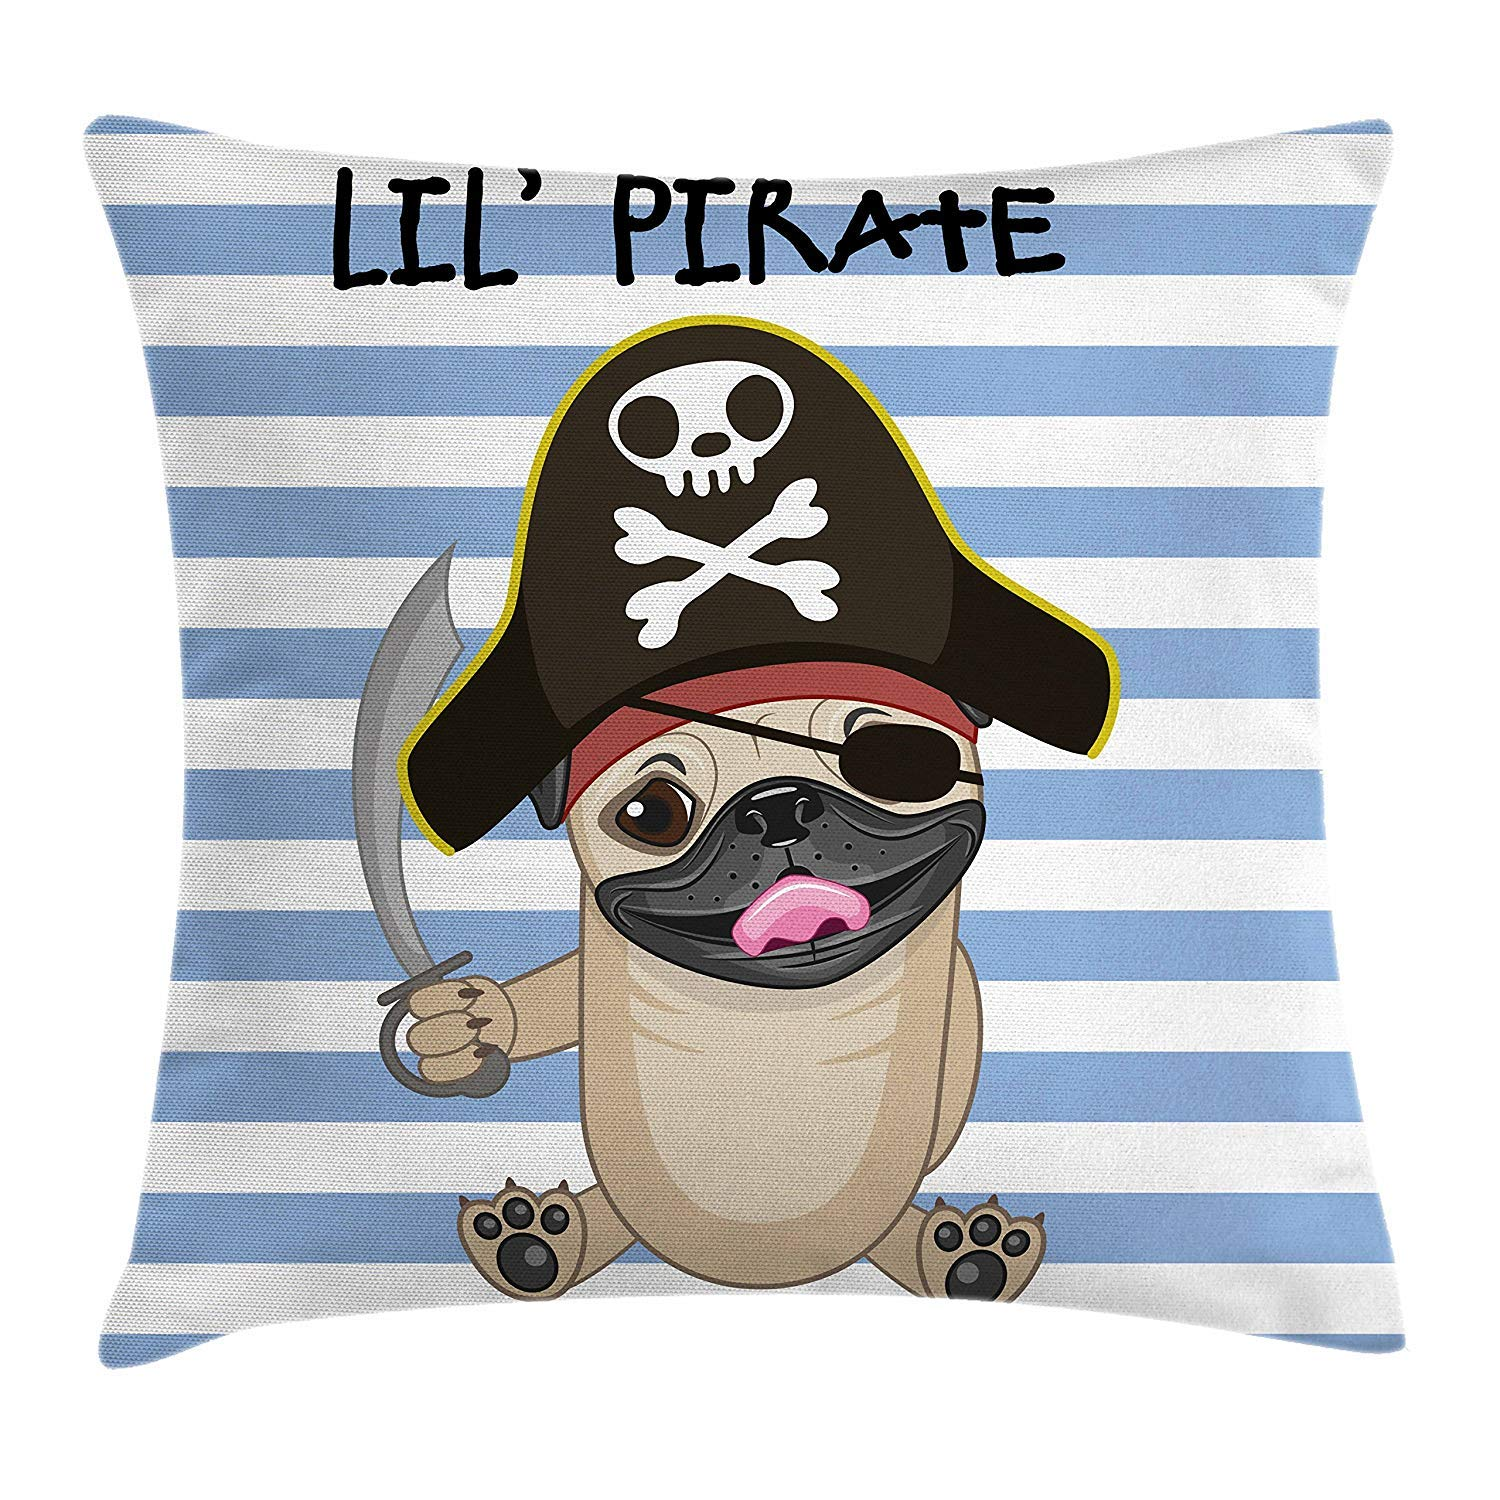 Pirate Throw Pillow Cushion Cover, Buccaneer Dog in Cartoon Style Costume Lil Pirate Striped Backdrop Funny Animal, Decorative Square Accent Pillow Case, 18 X 18 inches, Multicolor